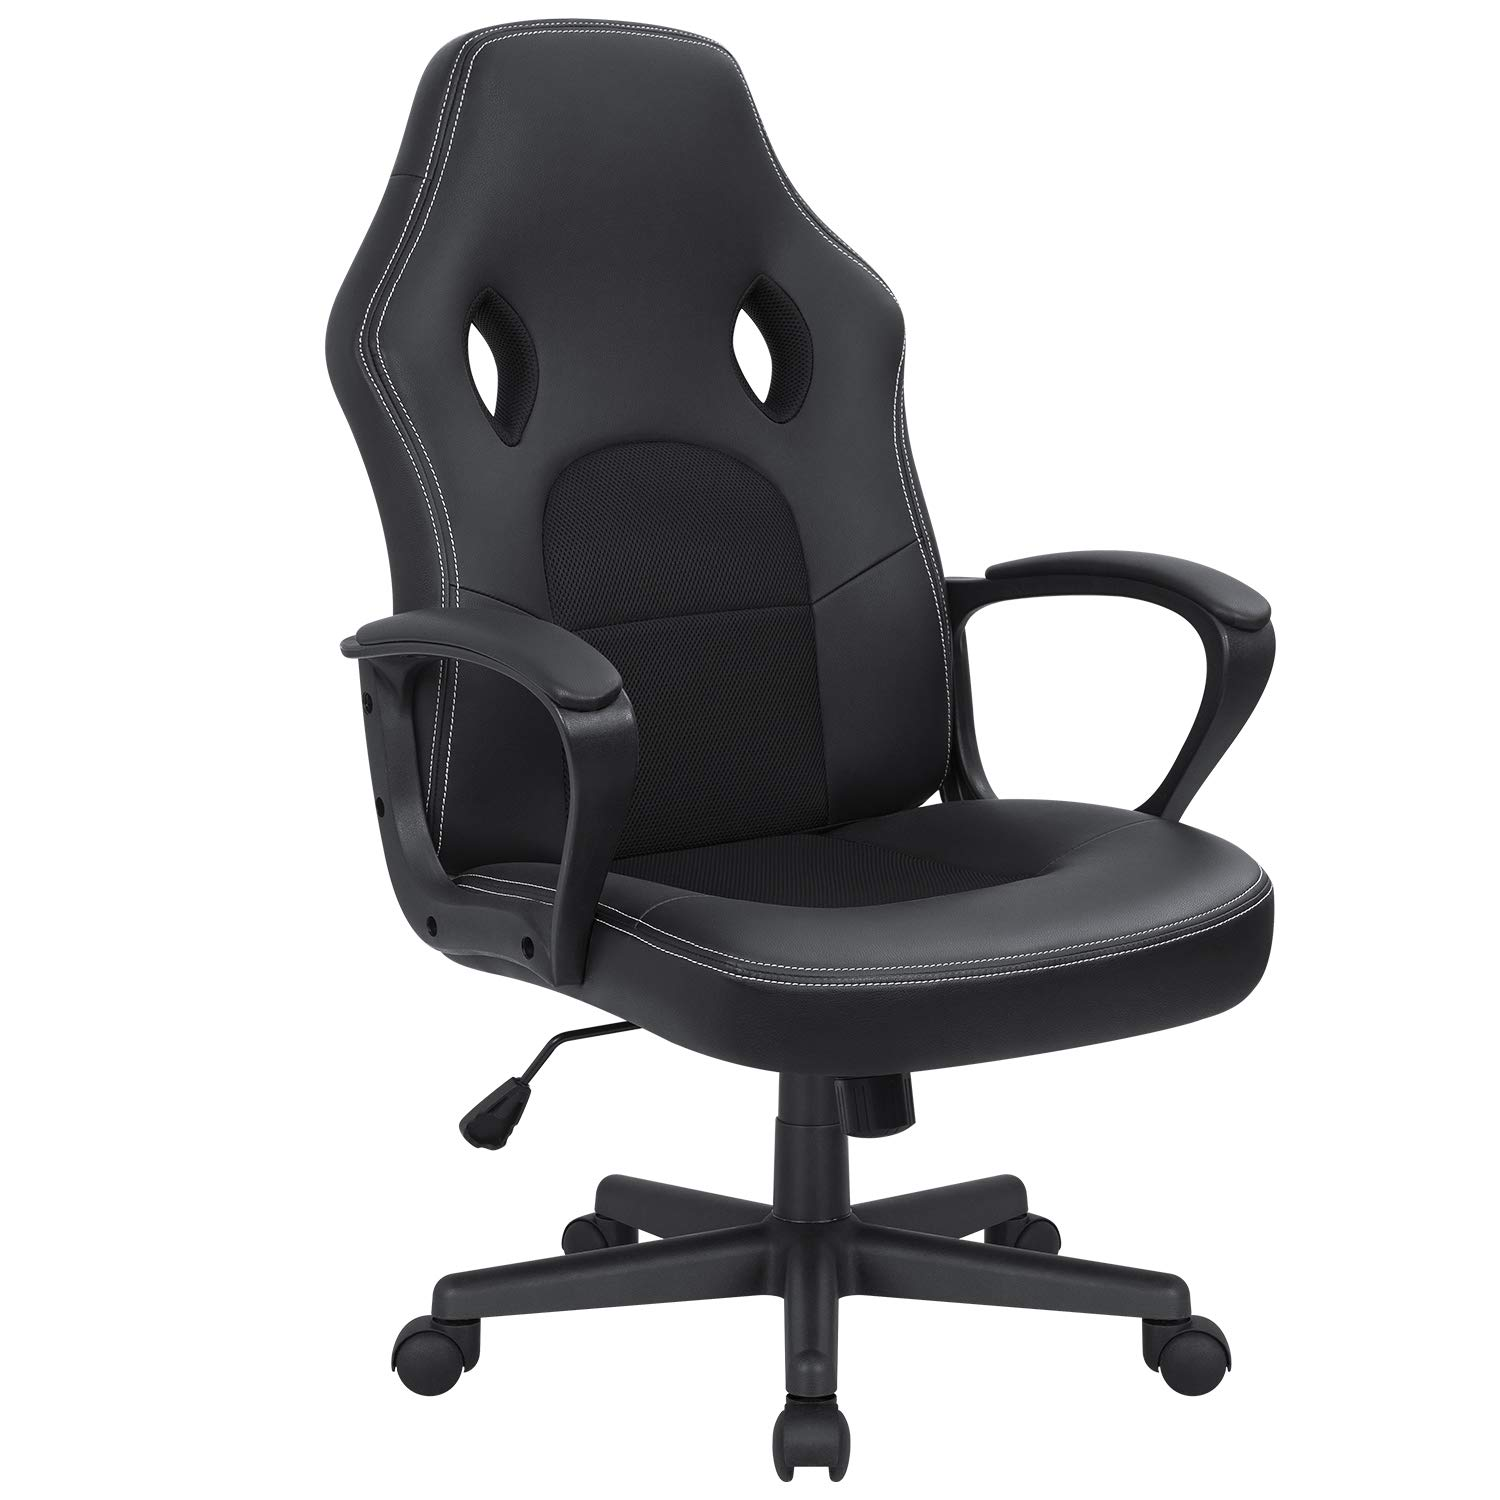 Kaimeng Office Chair Desk Leather Gaming Chair High Back Ergonomic Adjustable Racing Chair Executive Computer Chair (Black)